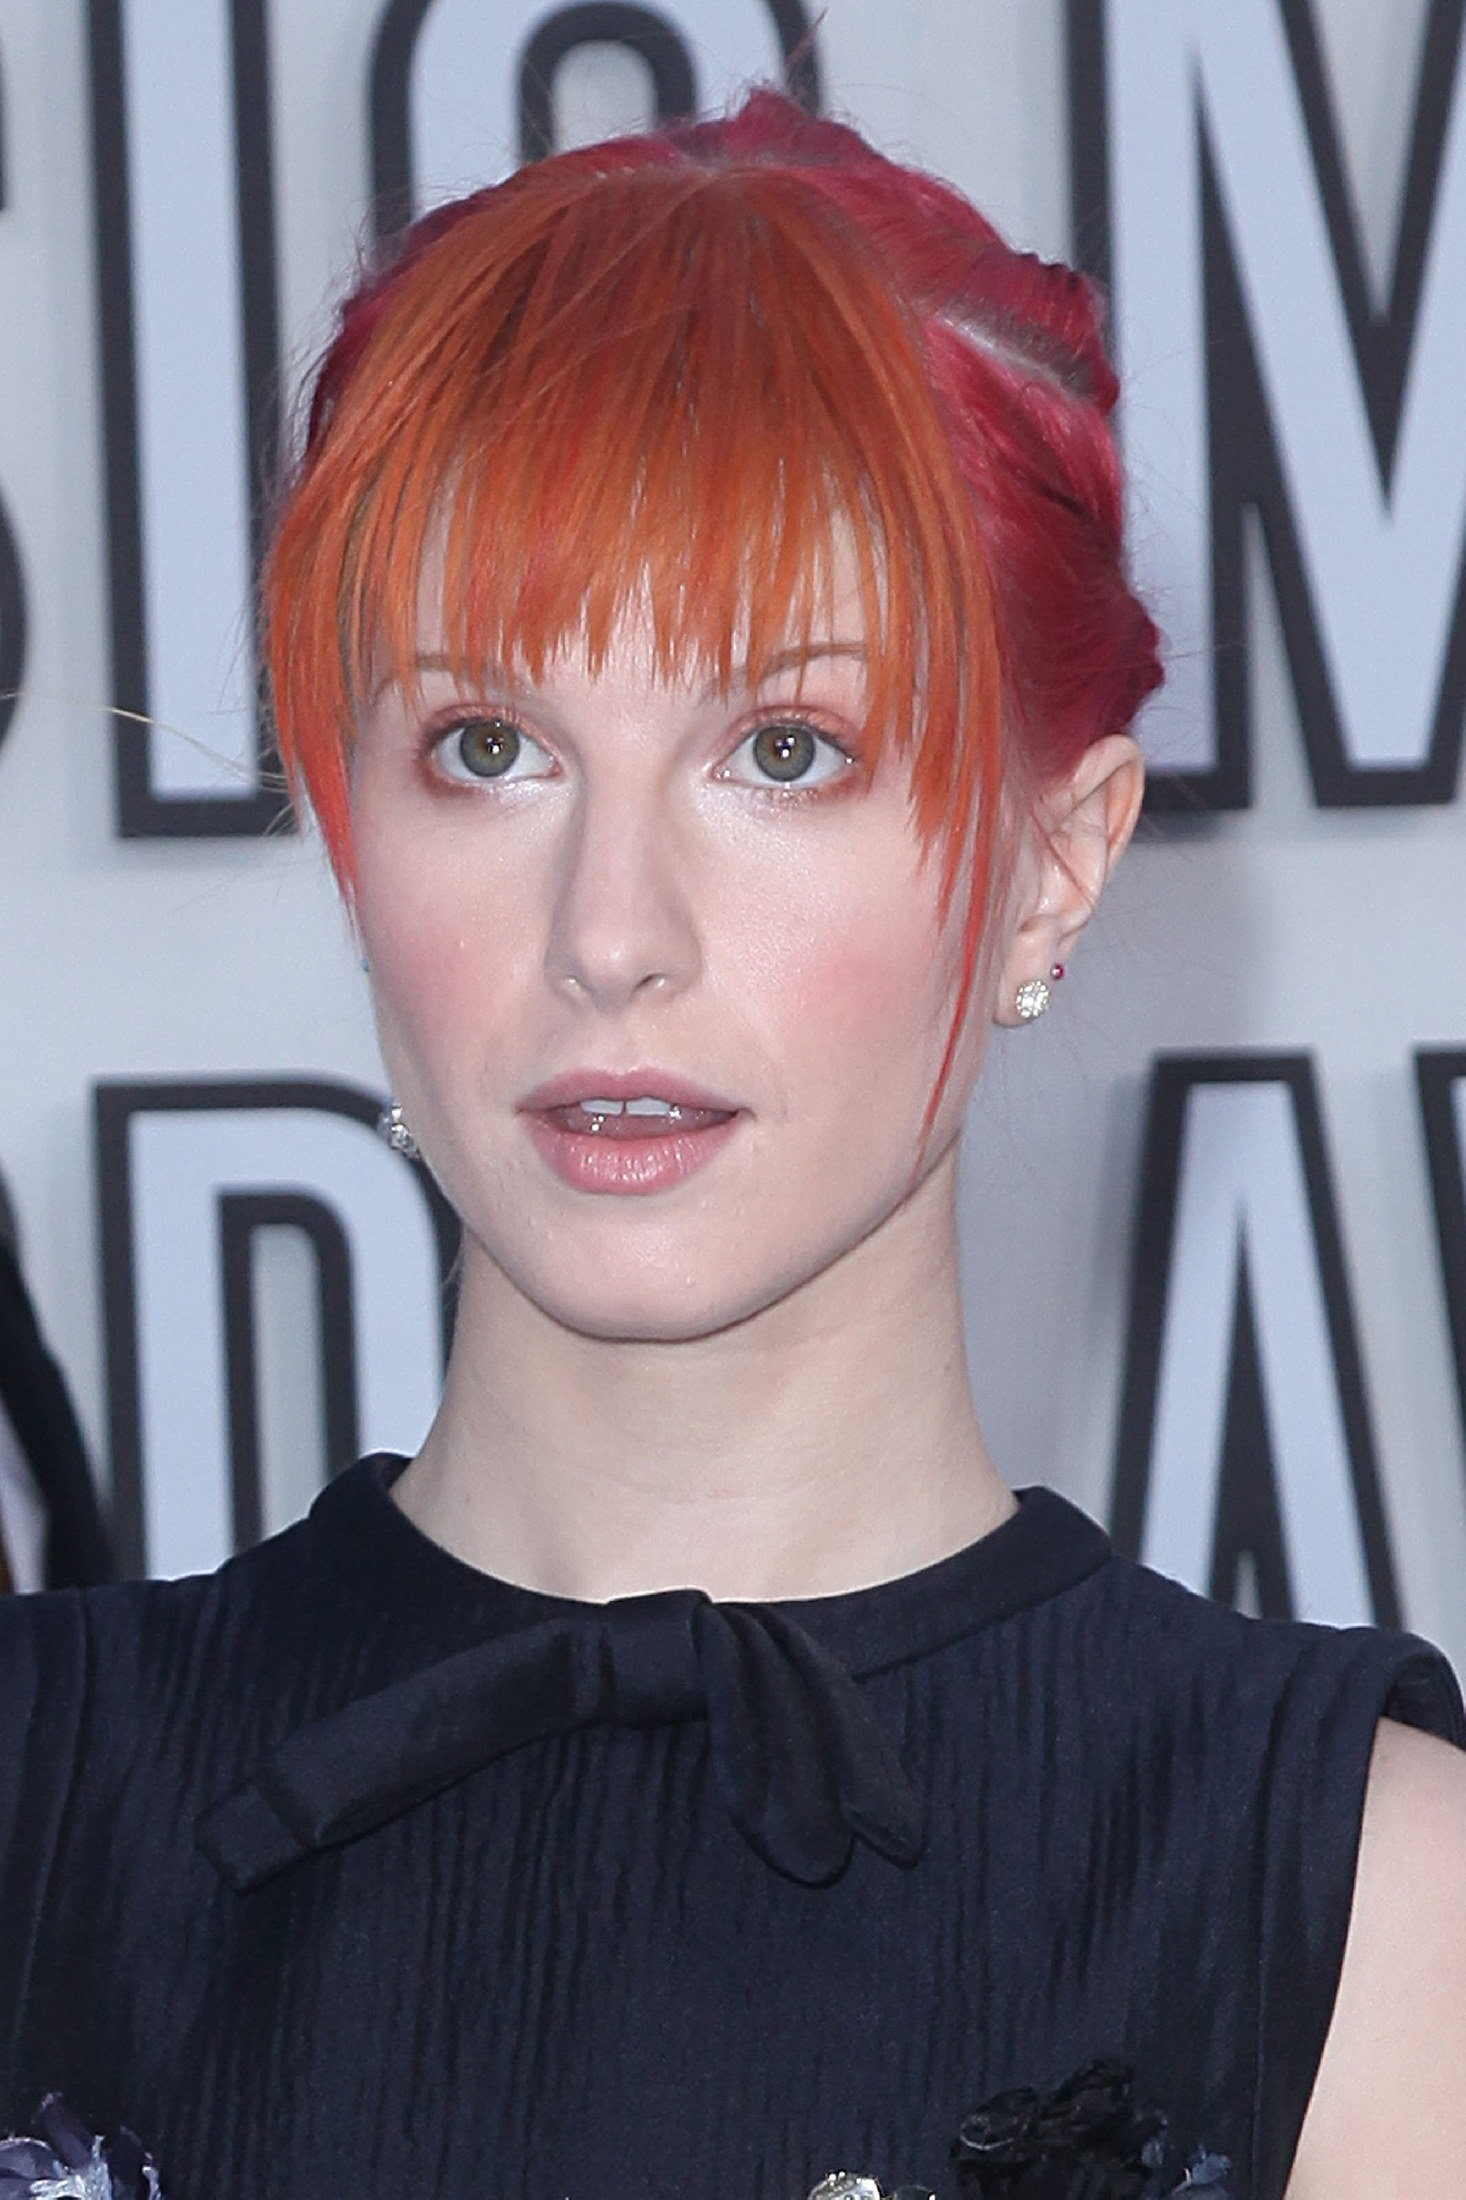 http://images4.fanpop.com/image/photos/15500000/Hayley-at-Video-Music-Awards-2010-paramore-15519177-1466-2200.jpg